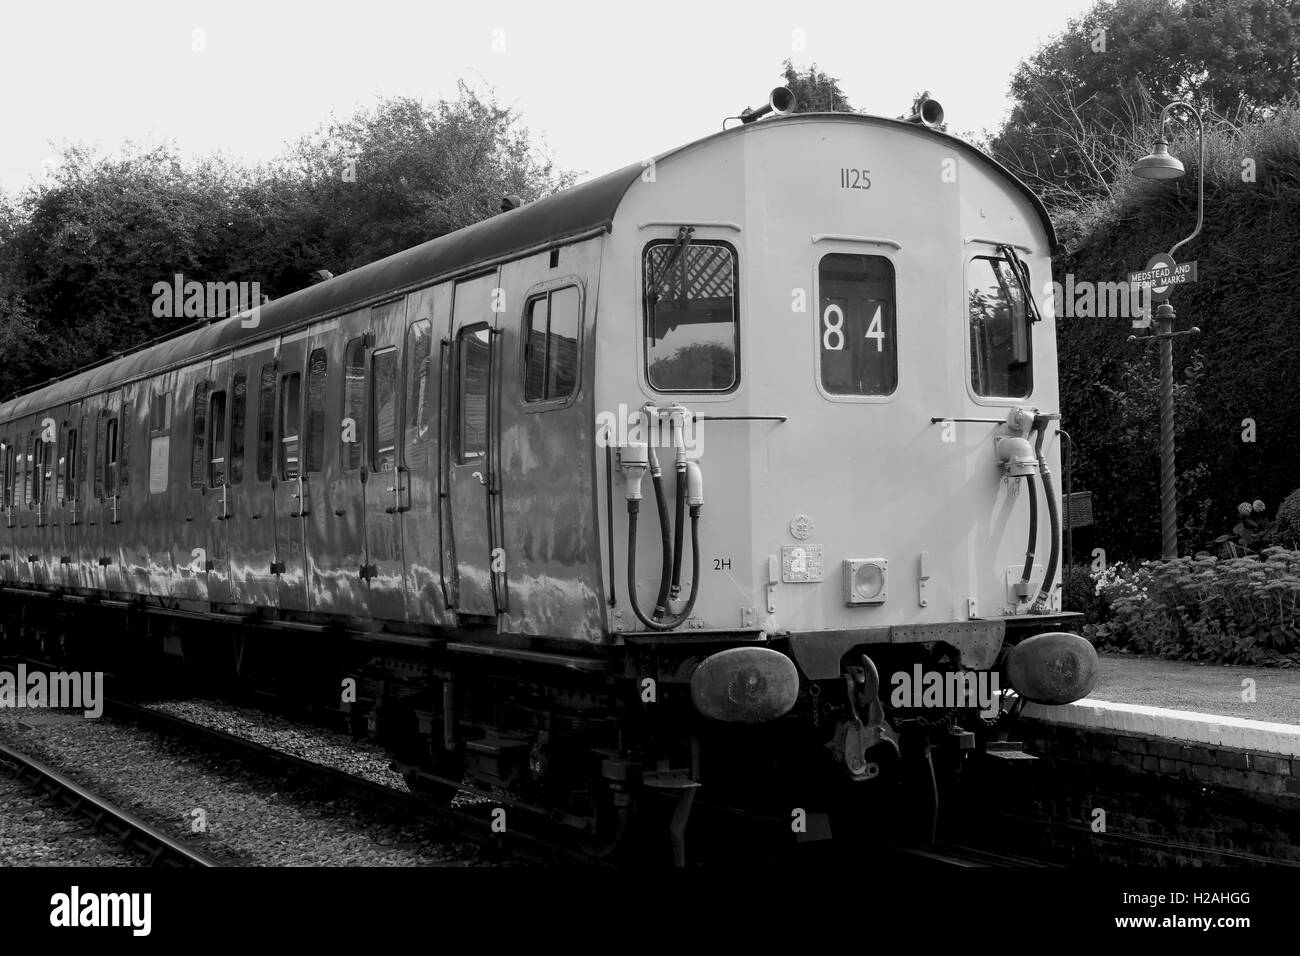 Old Diesel Train At A Station Platform Shot In Monochrome To Give The Retro Look